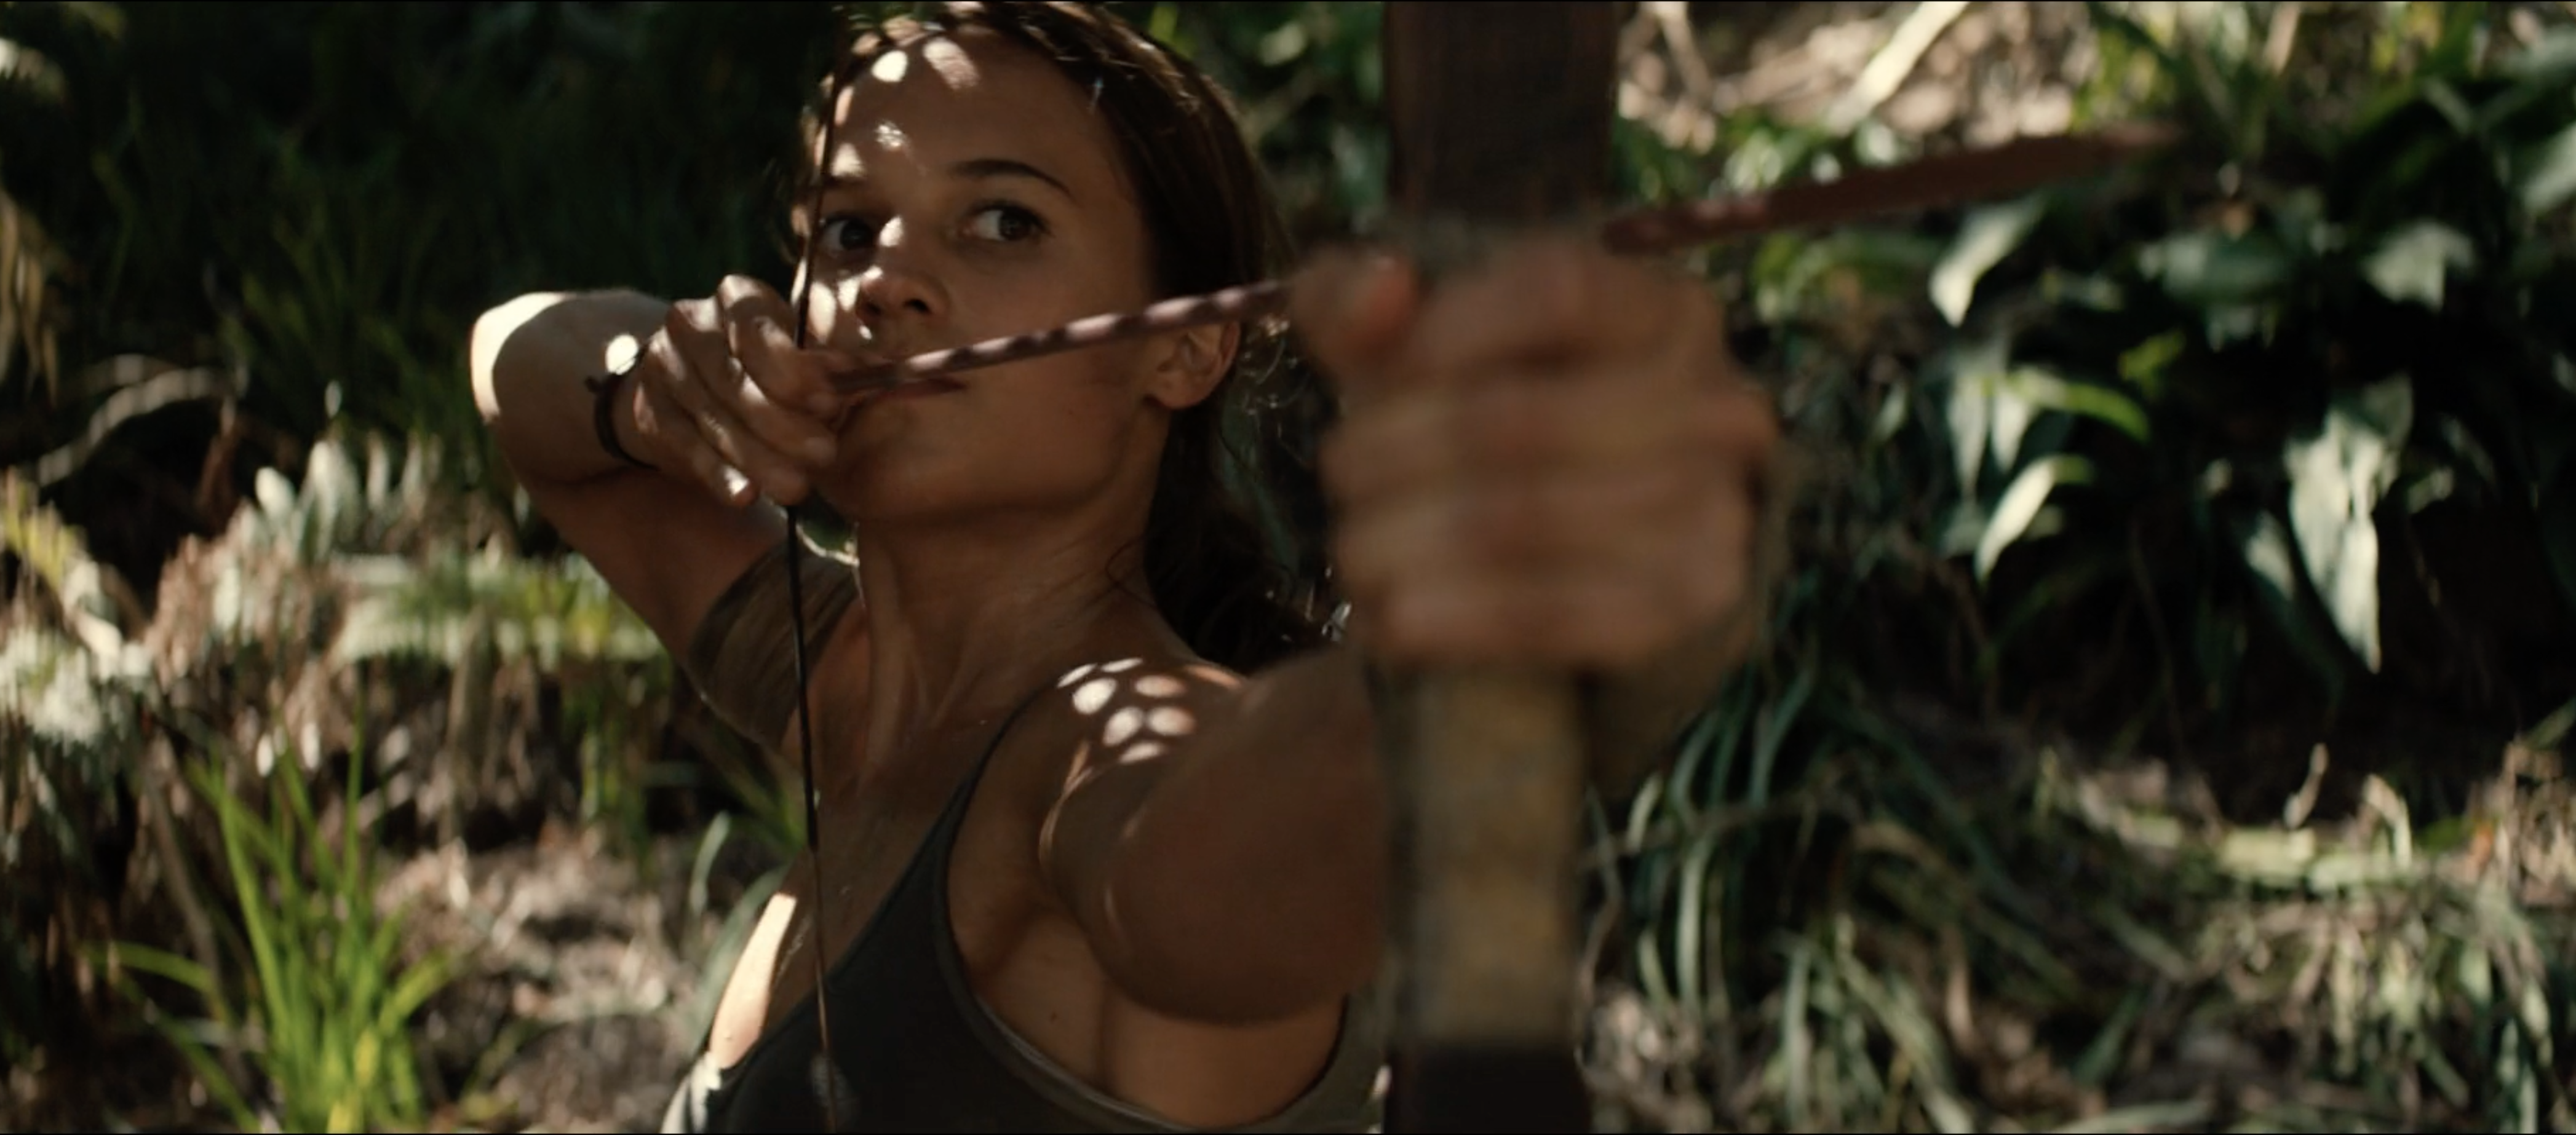 TOMB RAIDER BEFORE AND AFTER REEL